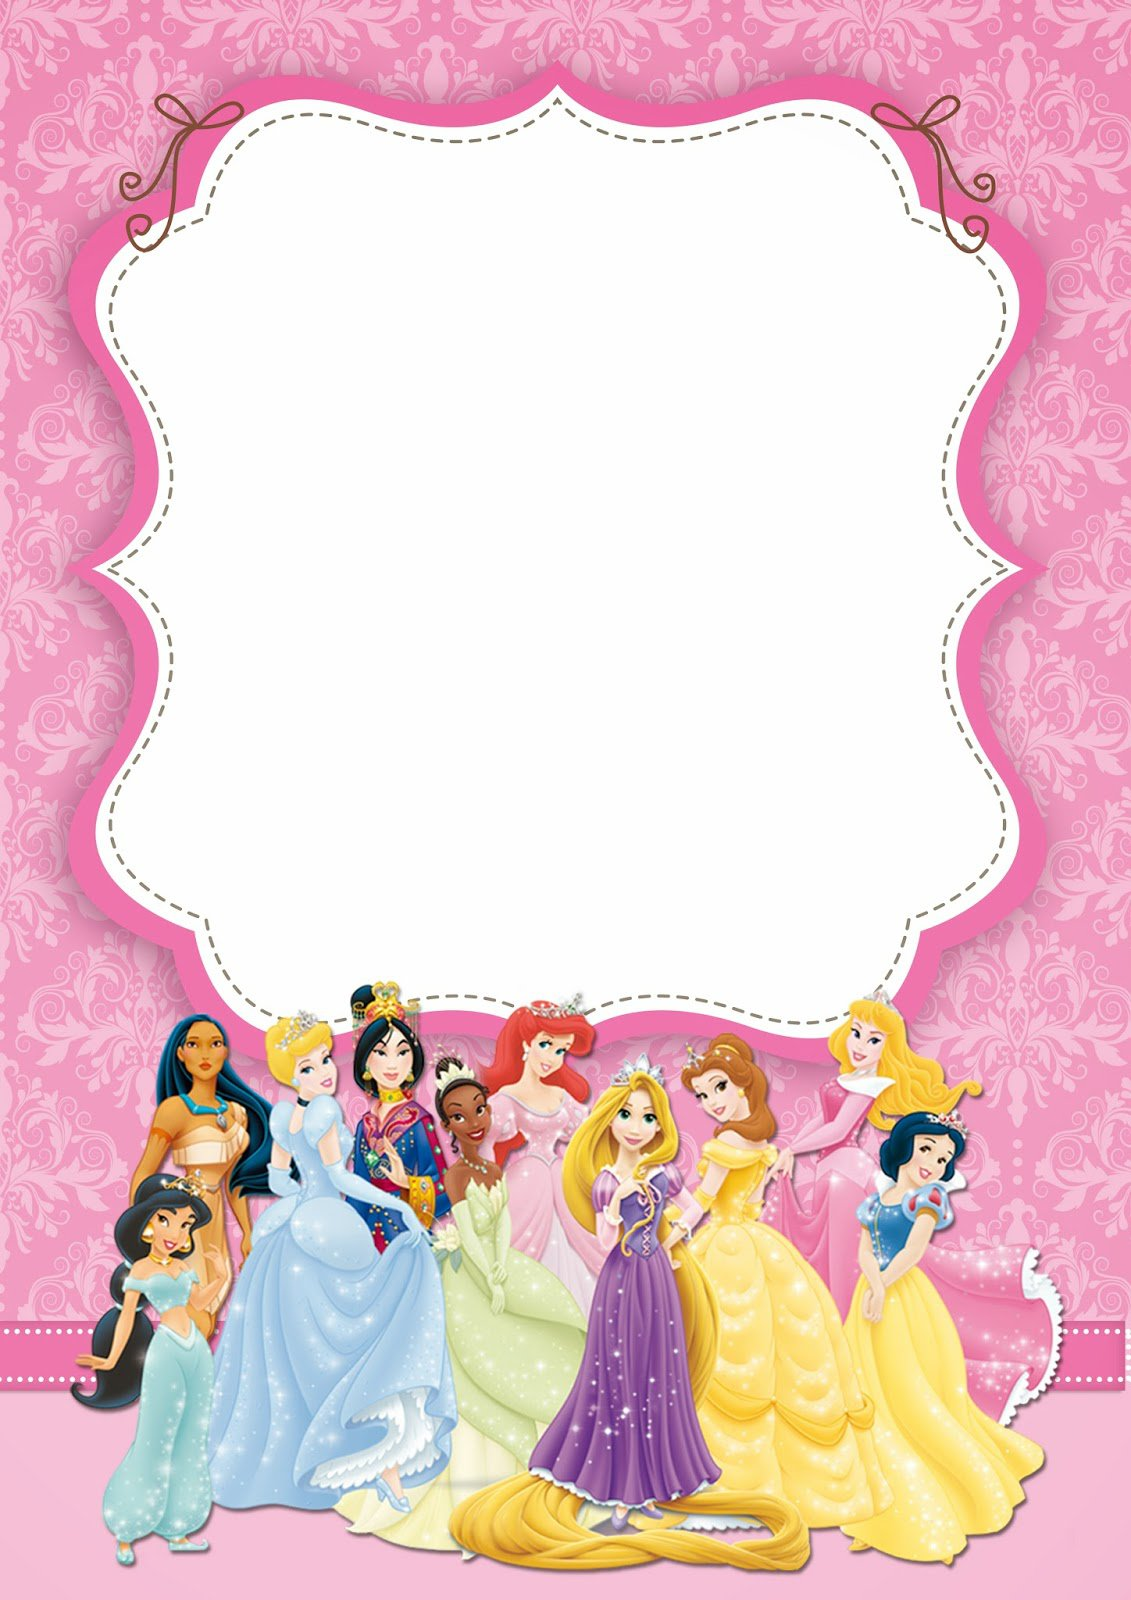 Disney Princess Invitations Free Download